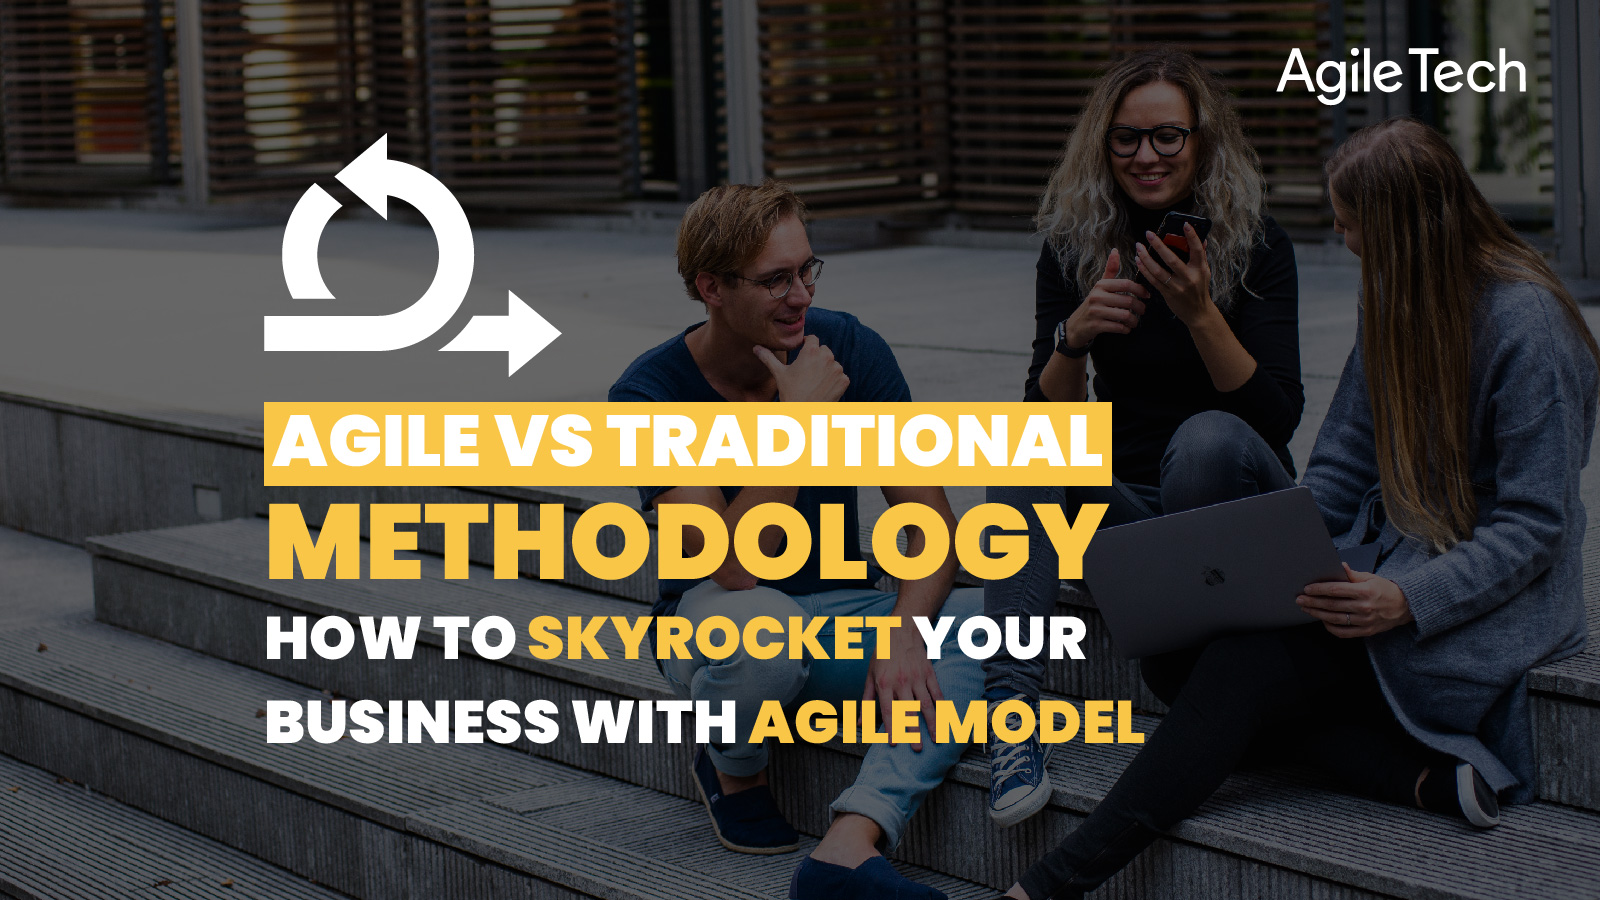 traditional vs agile sdlc, agile vs waterfall which method is more successful, why agile is better than traditional method, software development life cycle